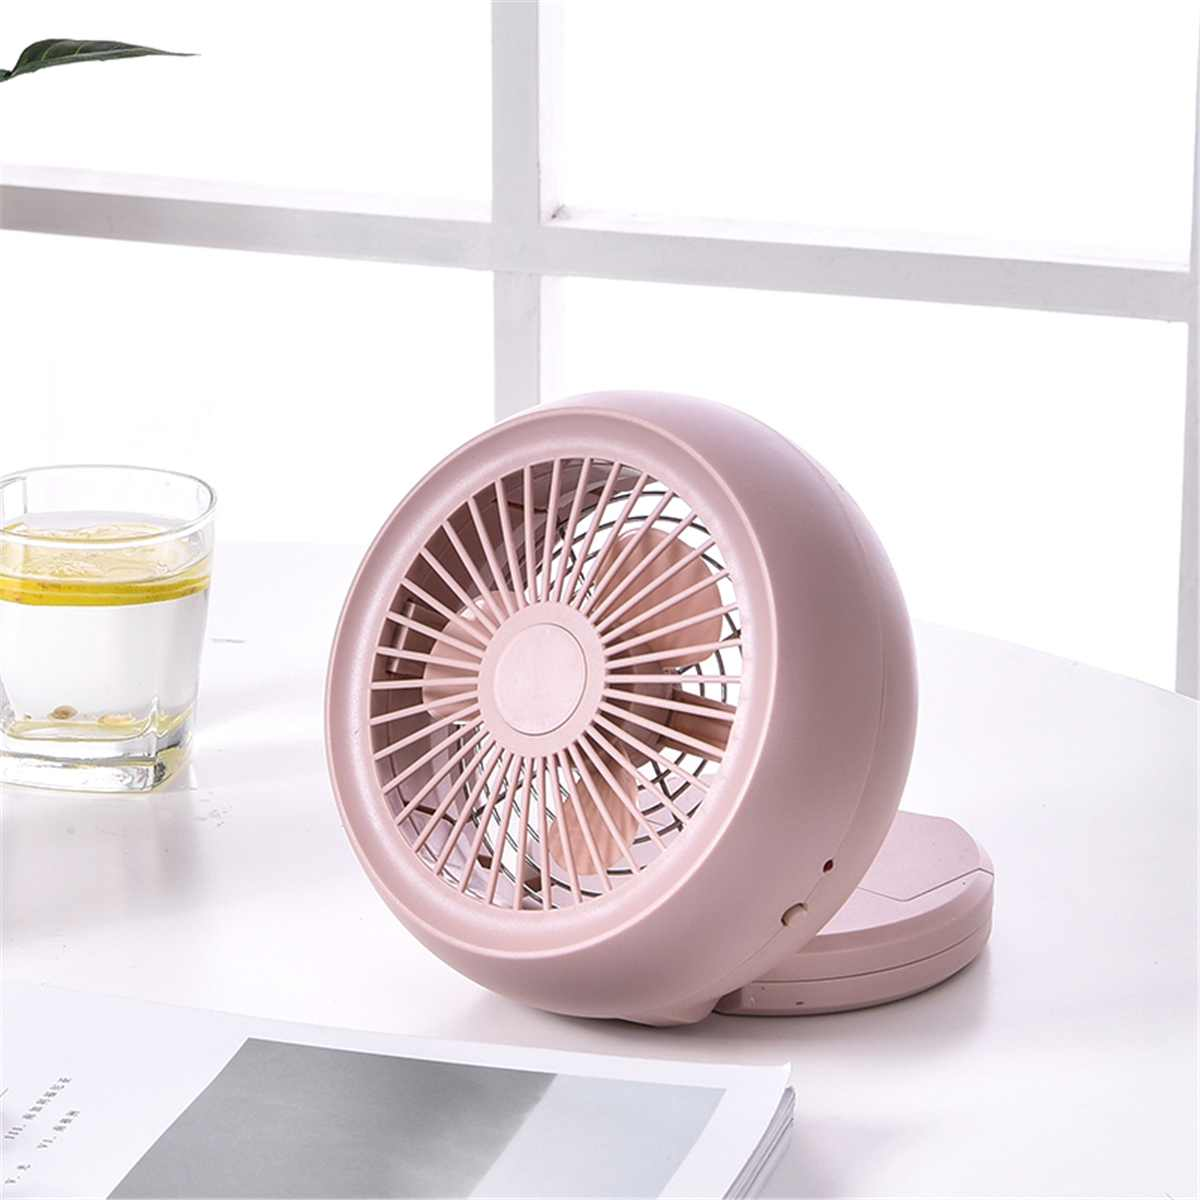 4 Colors Mini Desk Fan Electric Snail Air Cooling Cooler For Home Office Portable Ventilator Fans Appliance USB/Battery Powered